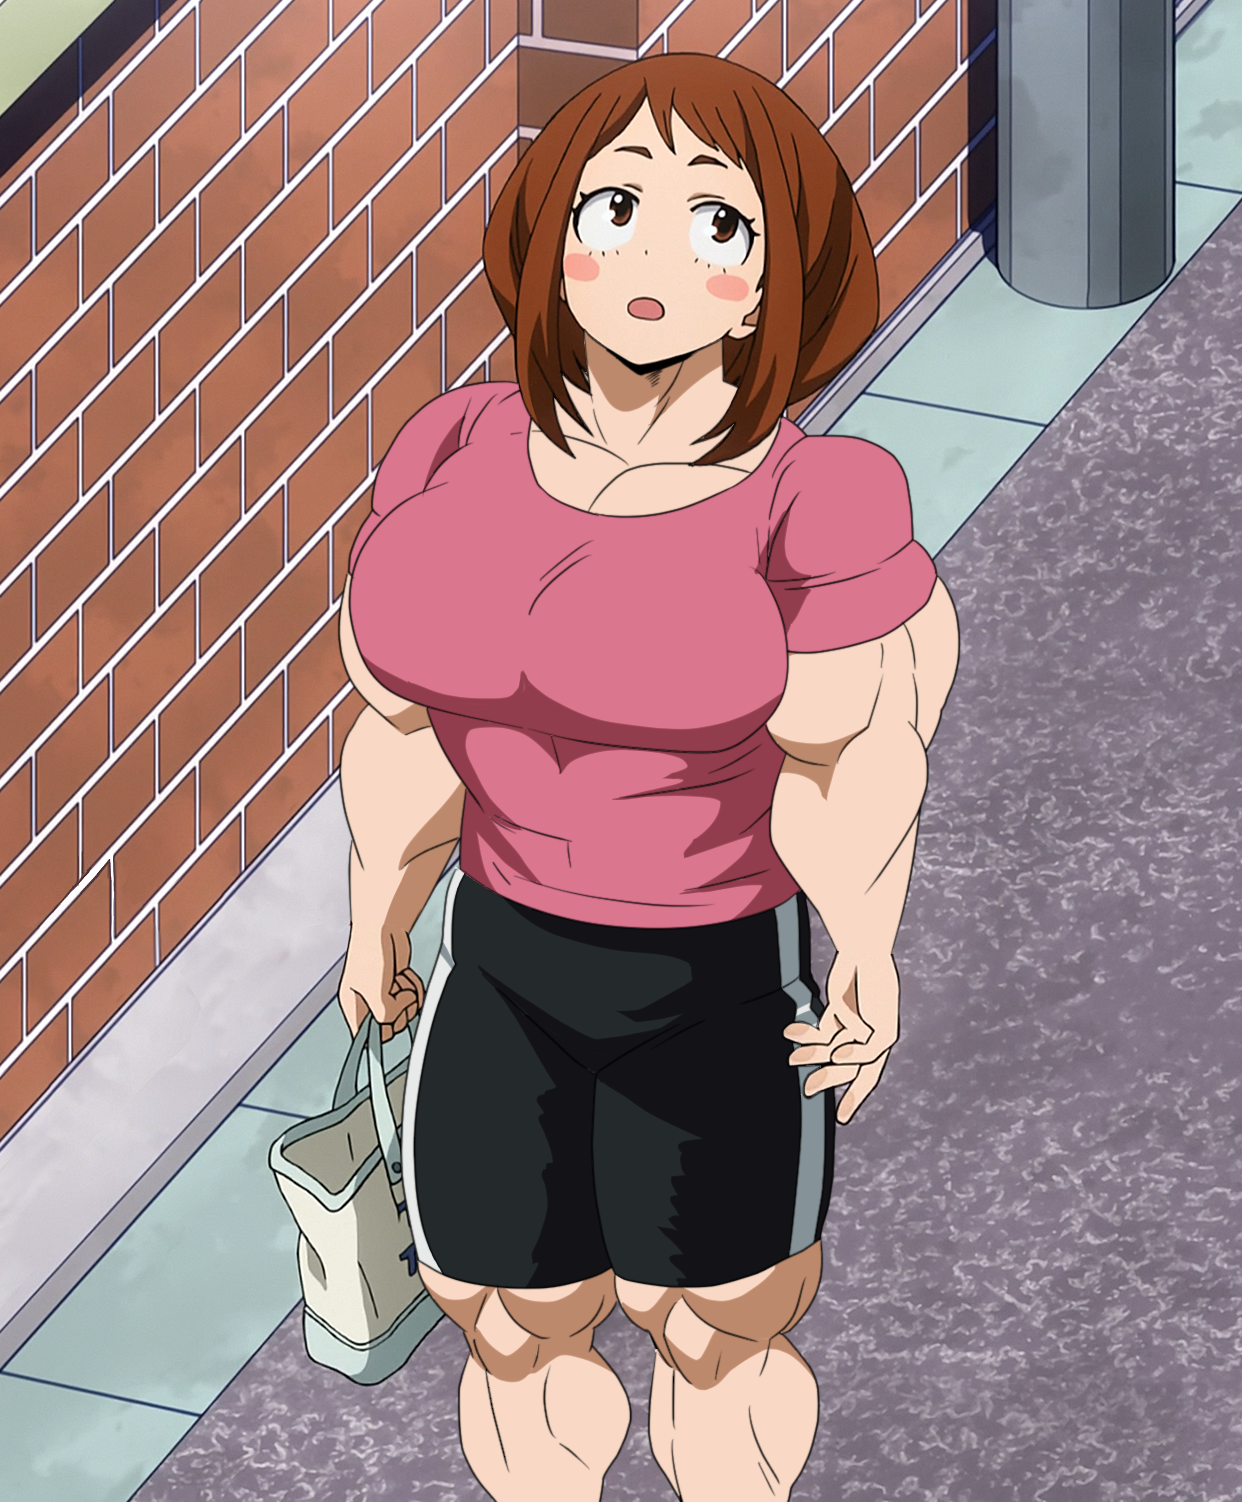 Anime Girl Growth casually ripped   muscle growth   know your meme